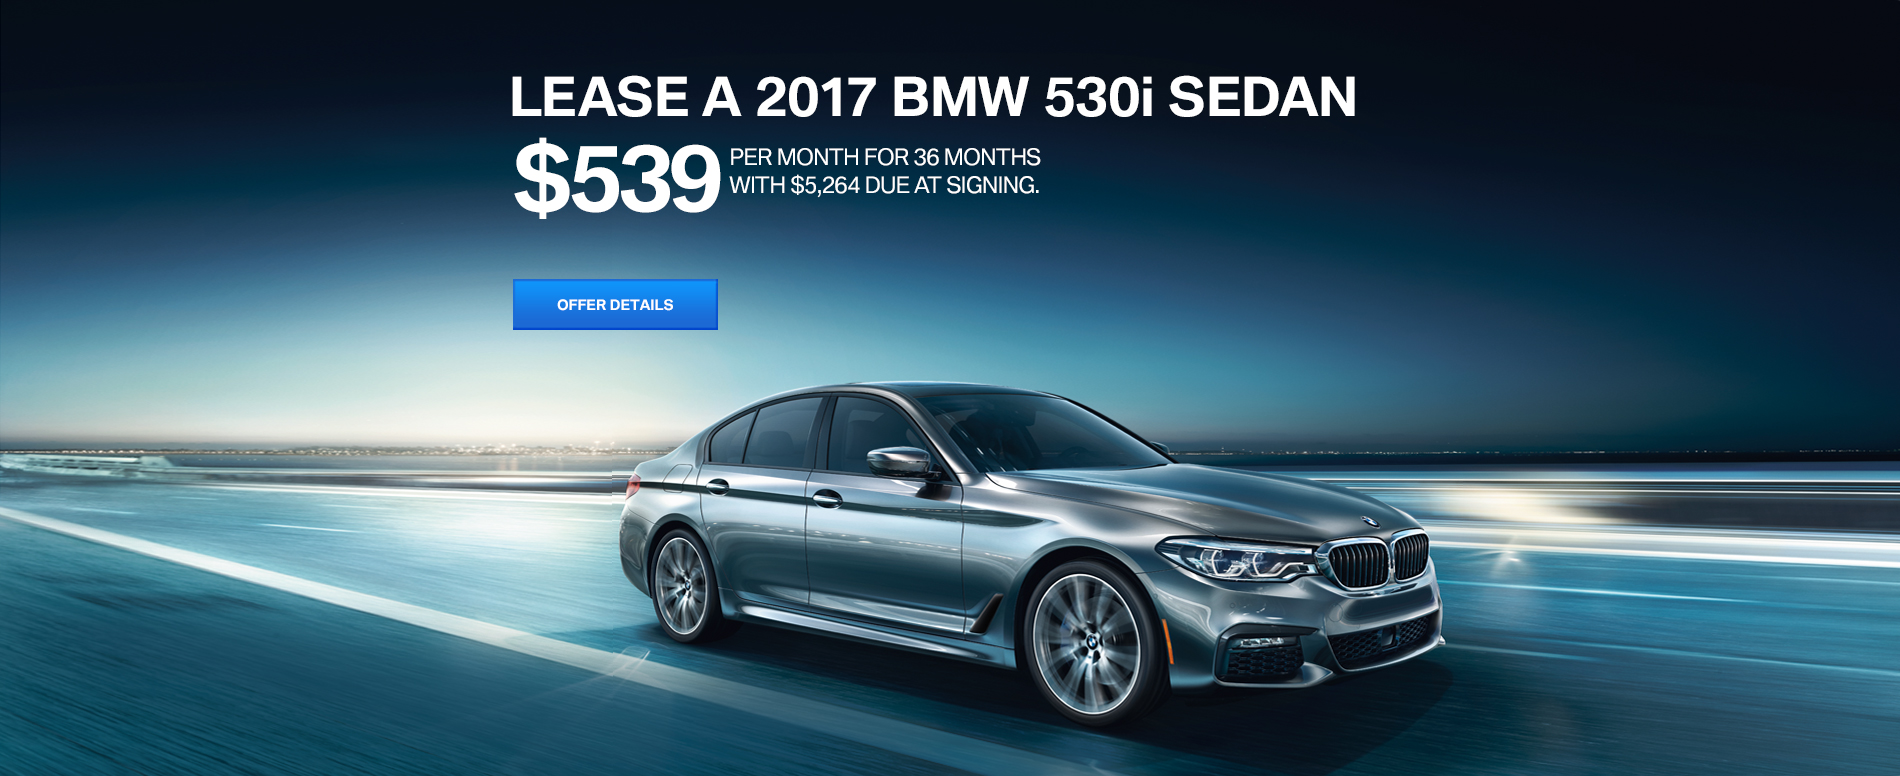 LEASE A 2017 530i SEDAN FOR $539/MO FOR 36 MONTHS, WITH $5,264 D